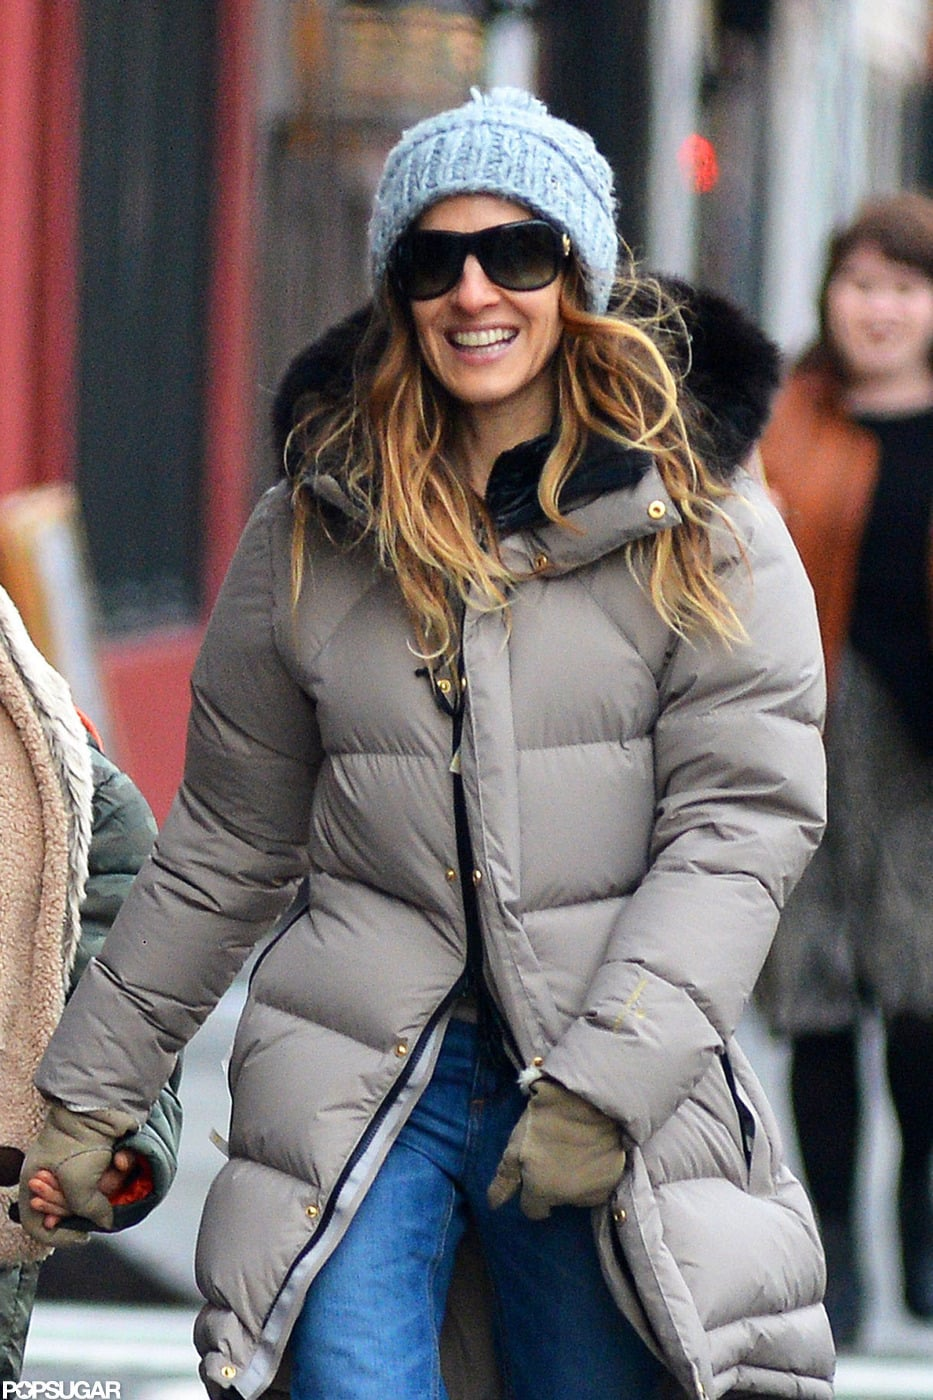 Sarah Jessica Parker wore a puffy jacket and a blue hat.